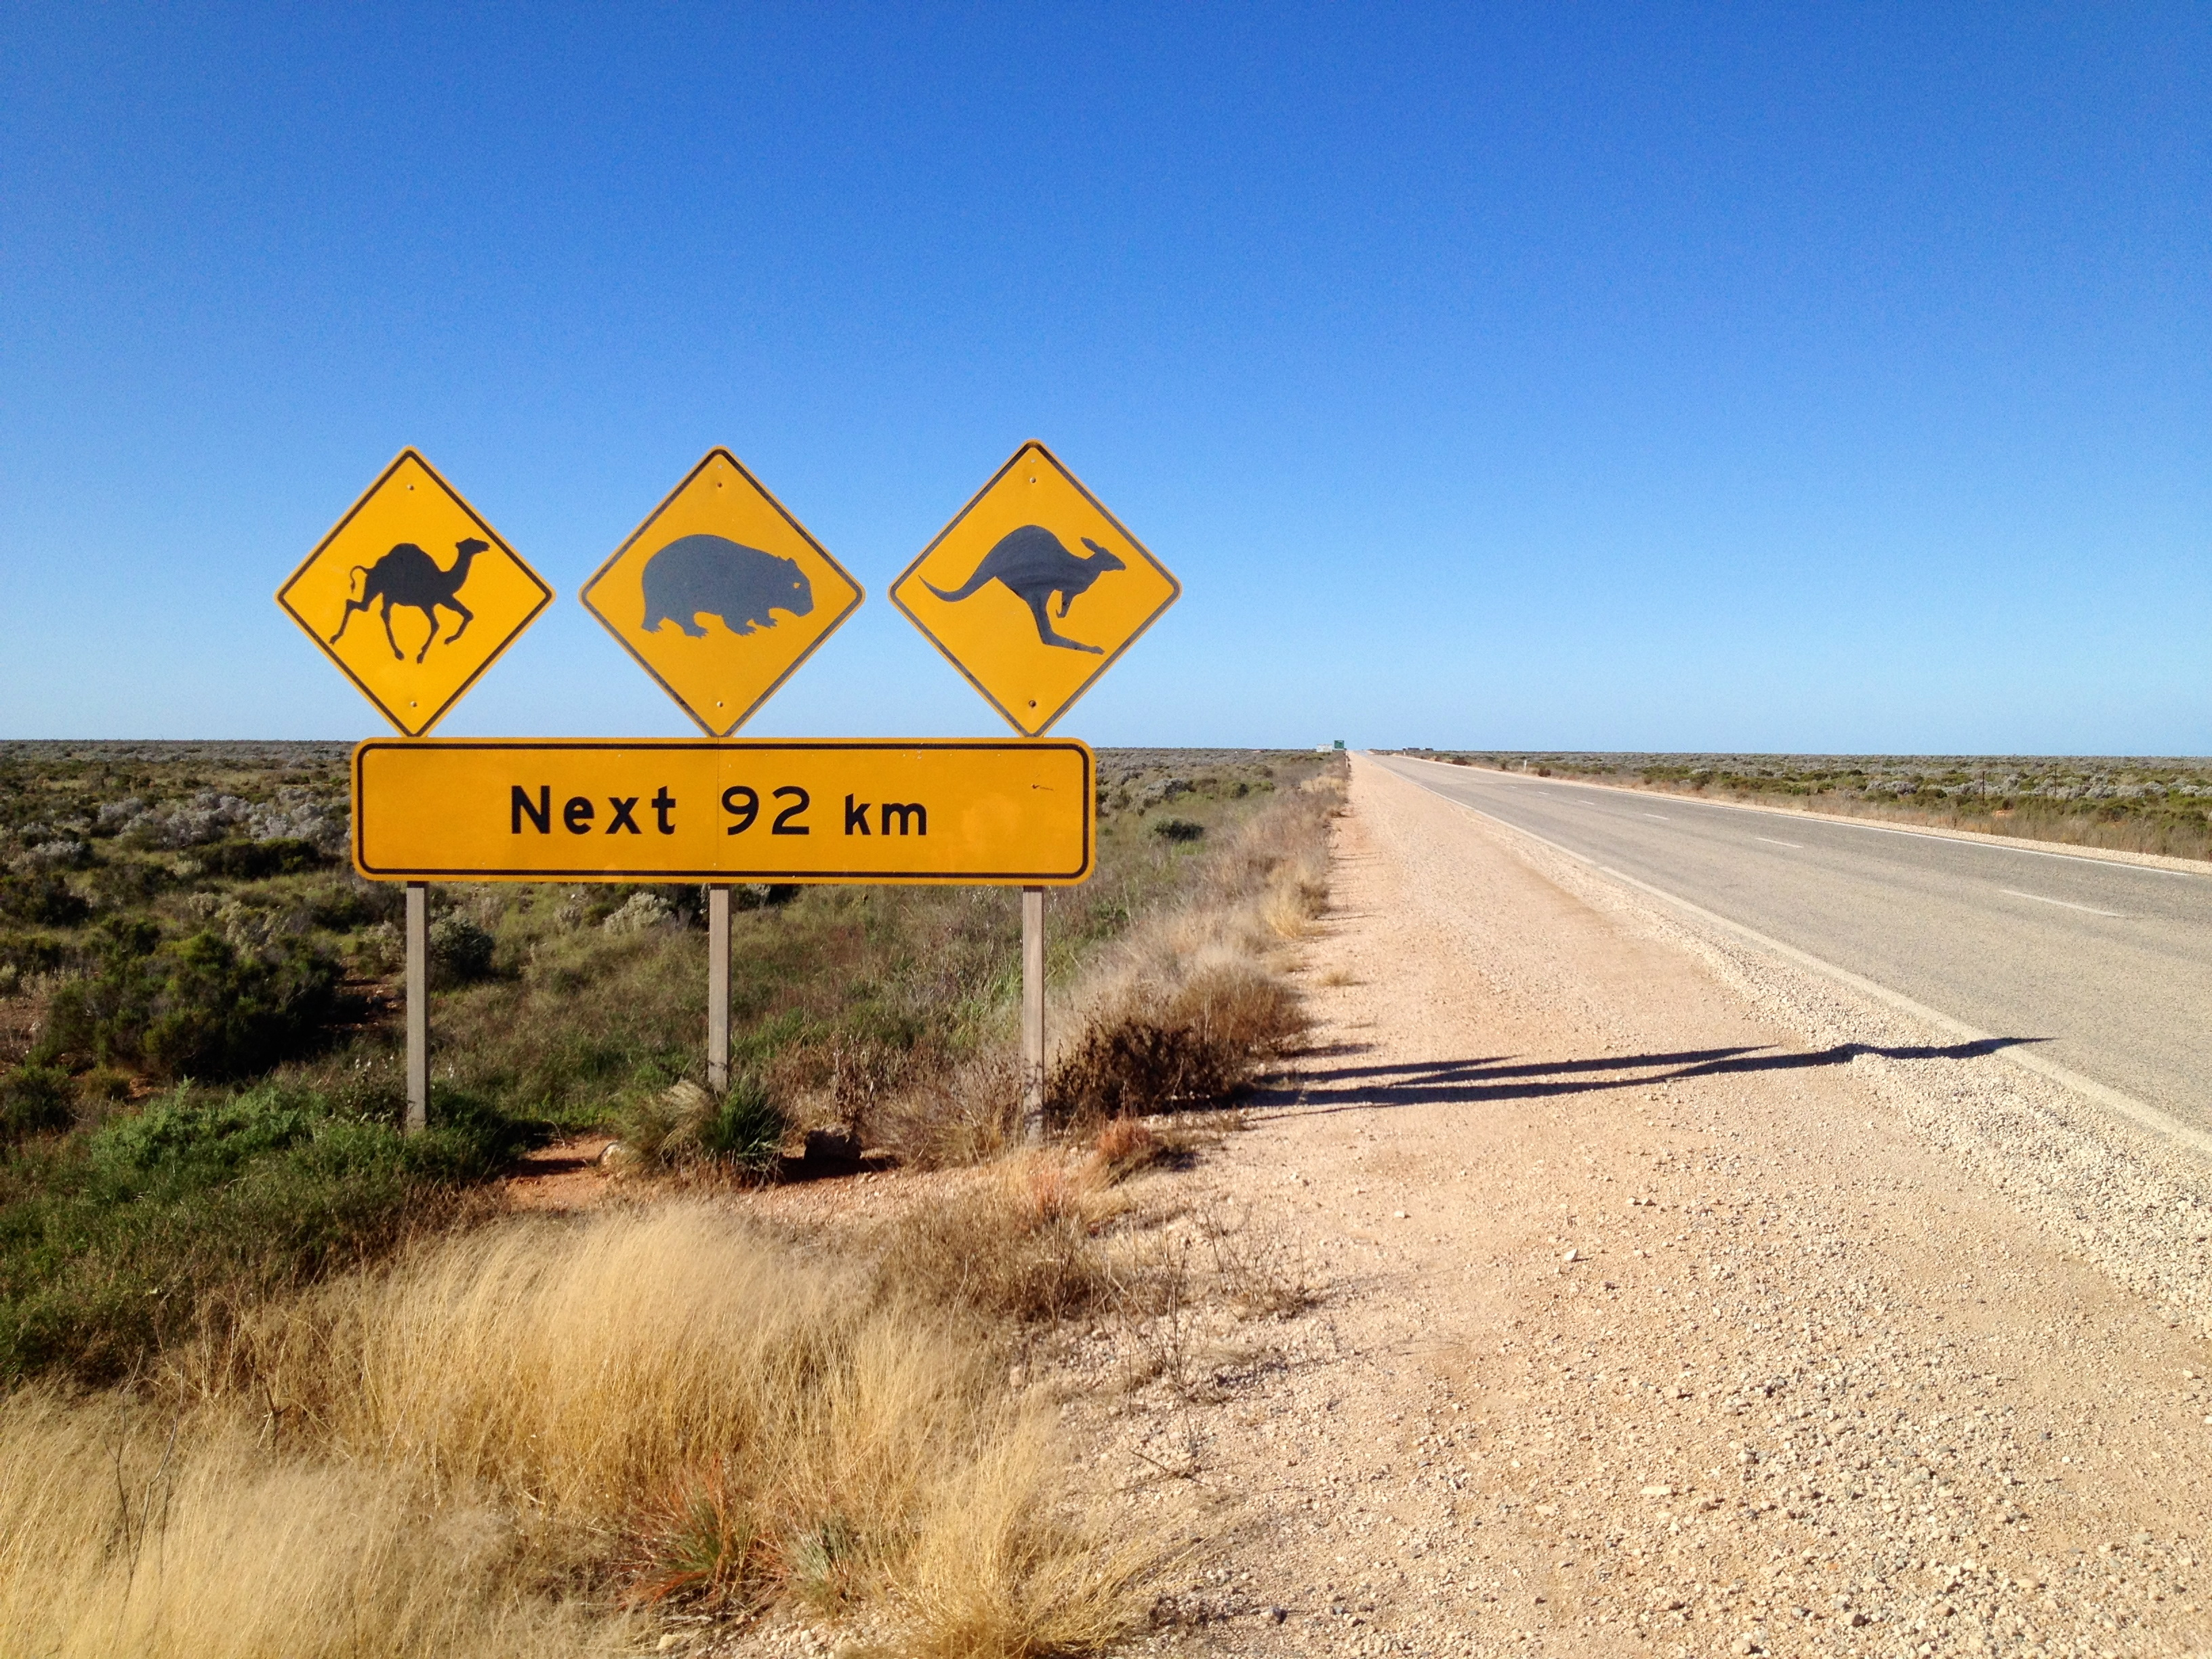 Nullabor Desert Roadtrip - Perth